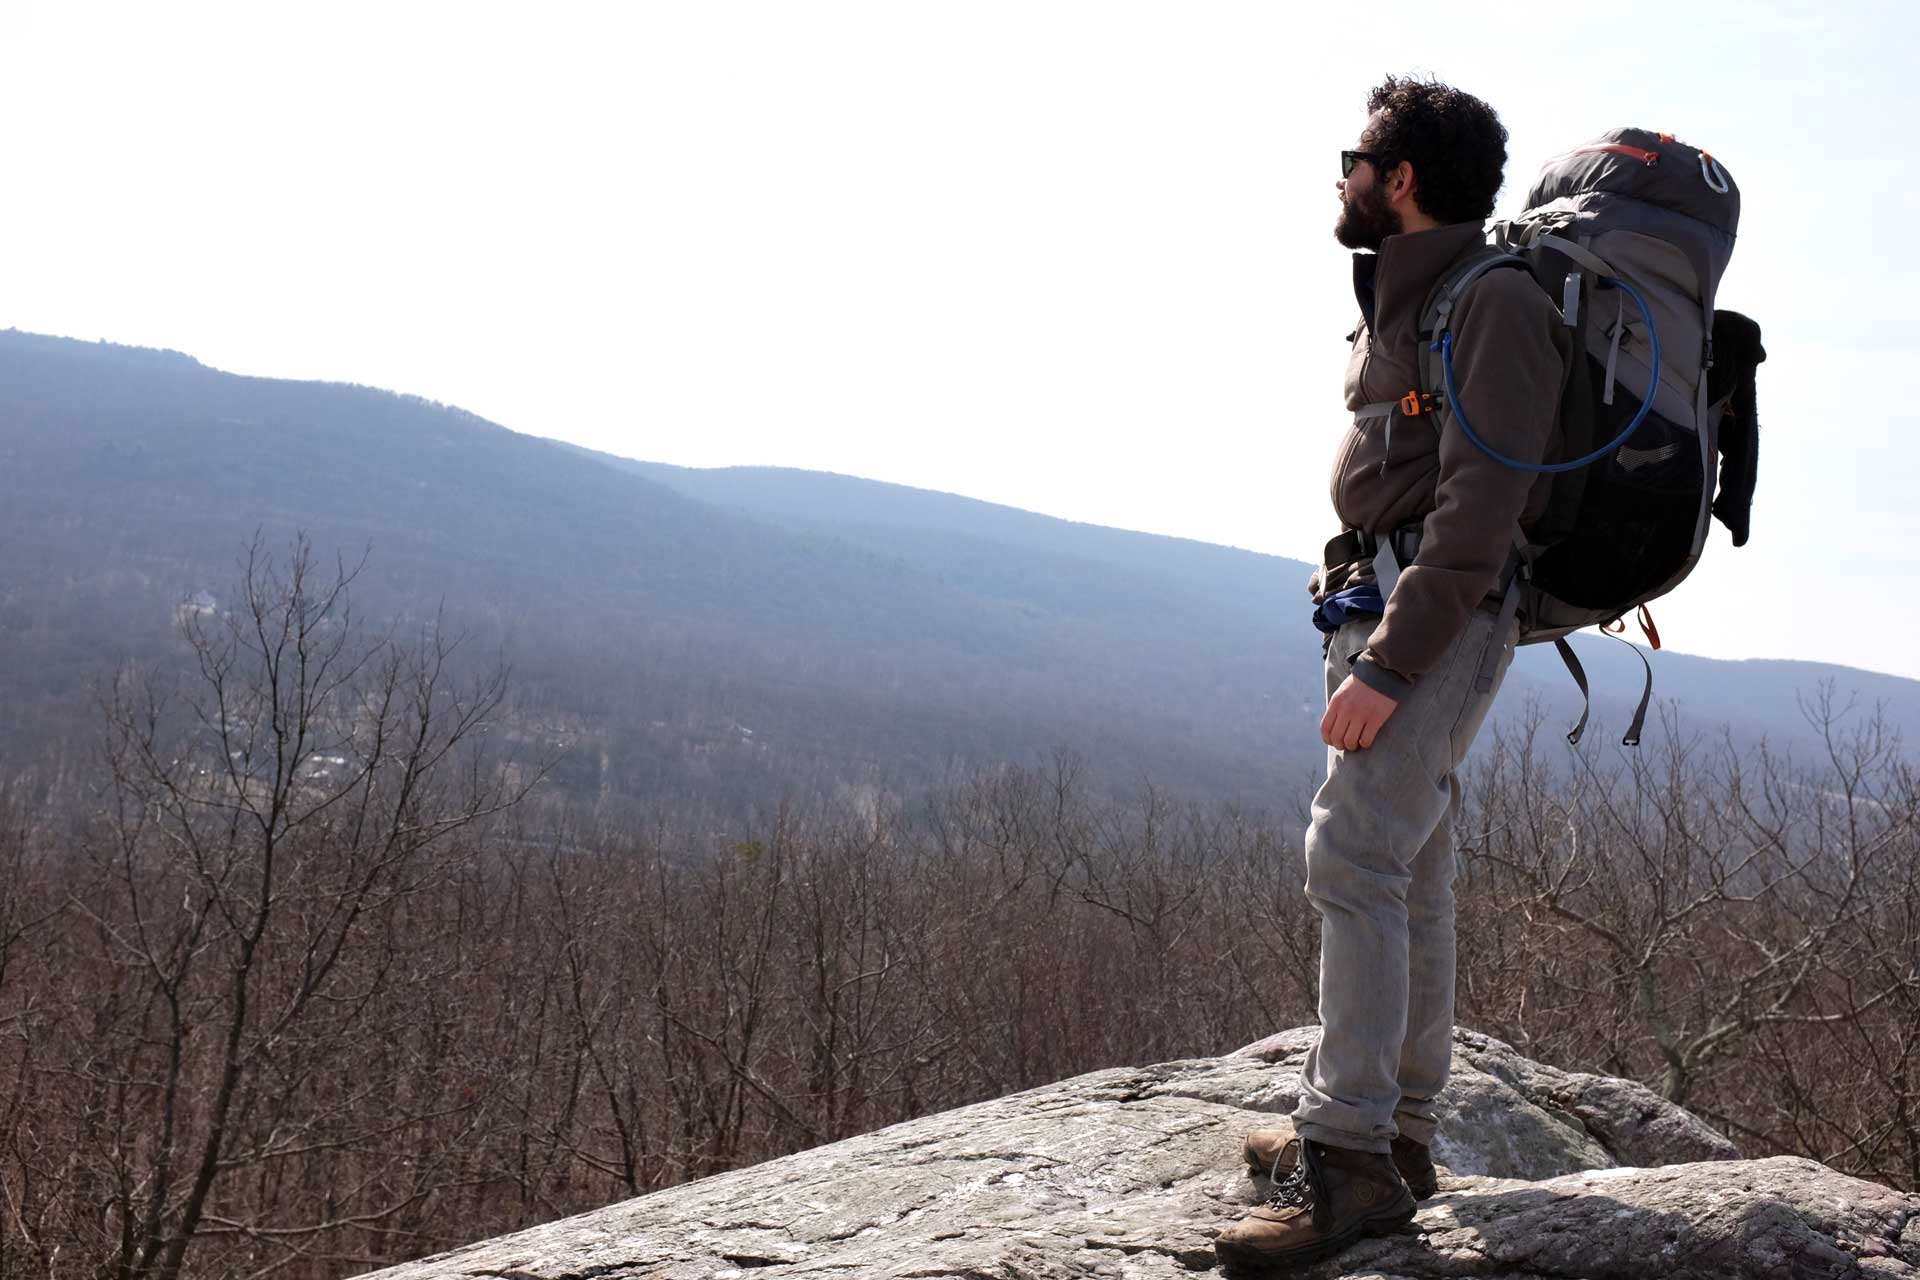 Photograph: the author stands at an overlook wearing a large backpack. Mountains are visible through haze in the far distance